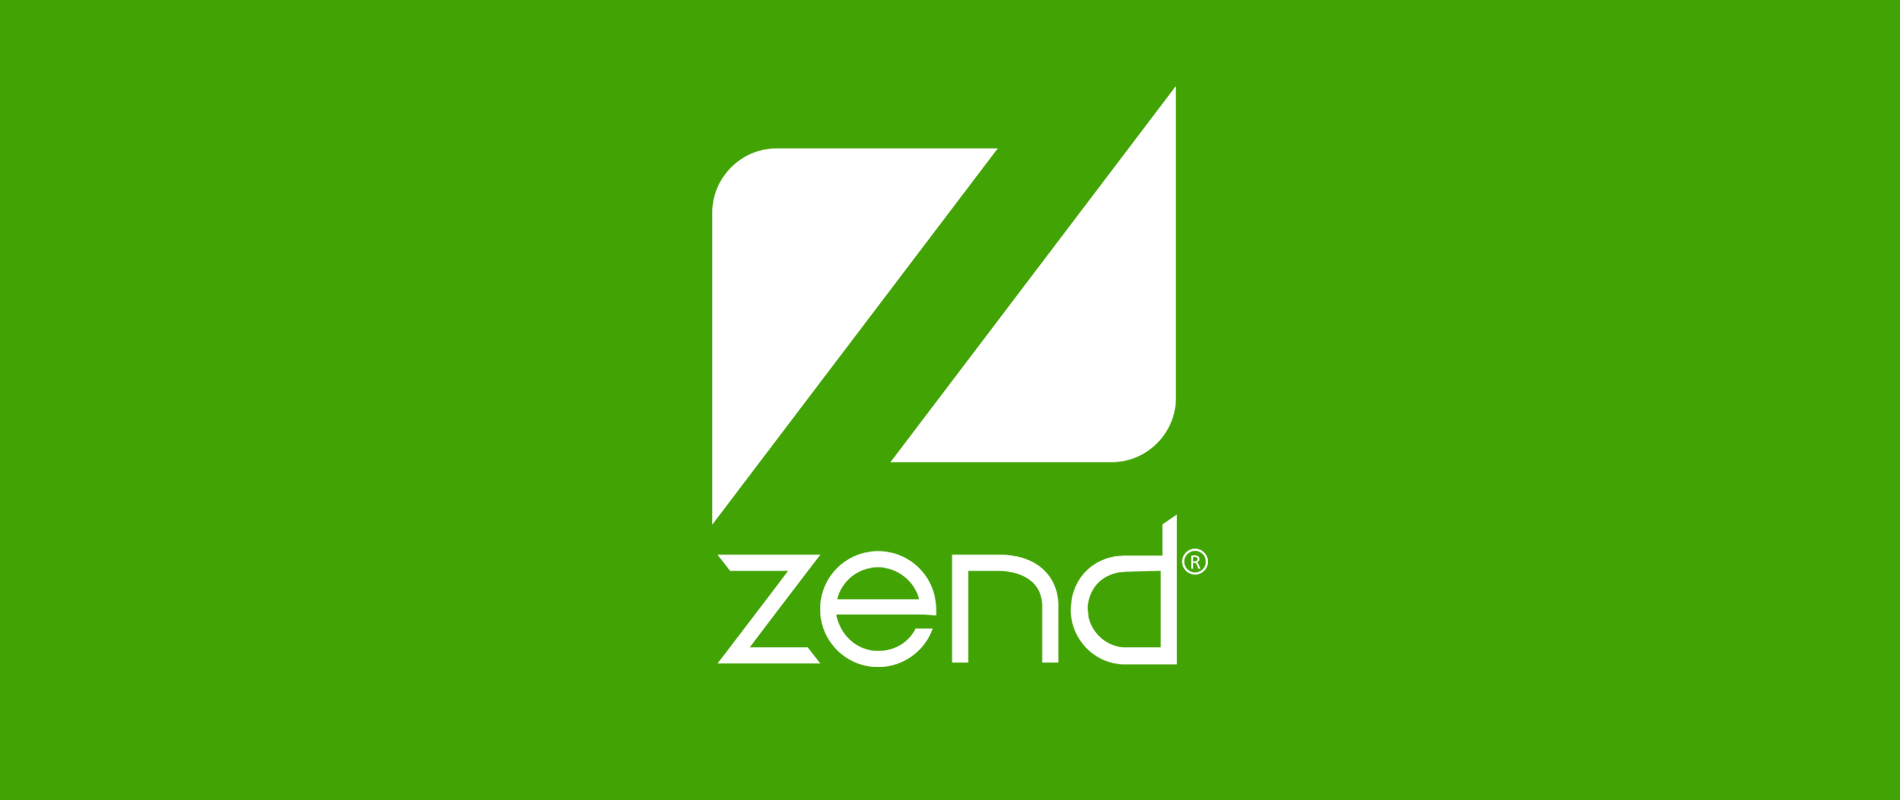 Zeev Suraski: The Future of Zend Engine and Zend Framework